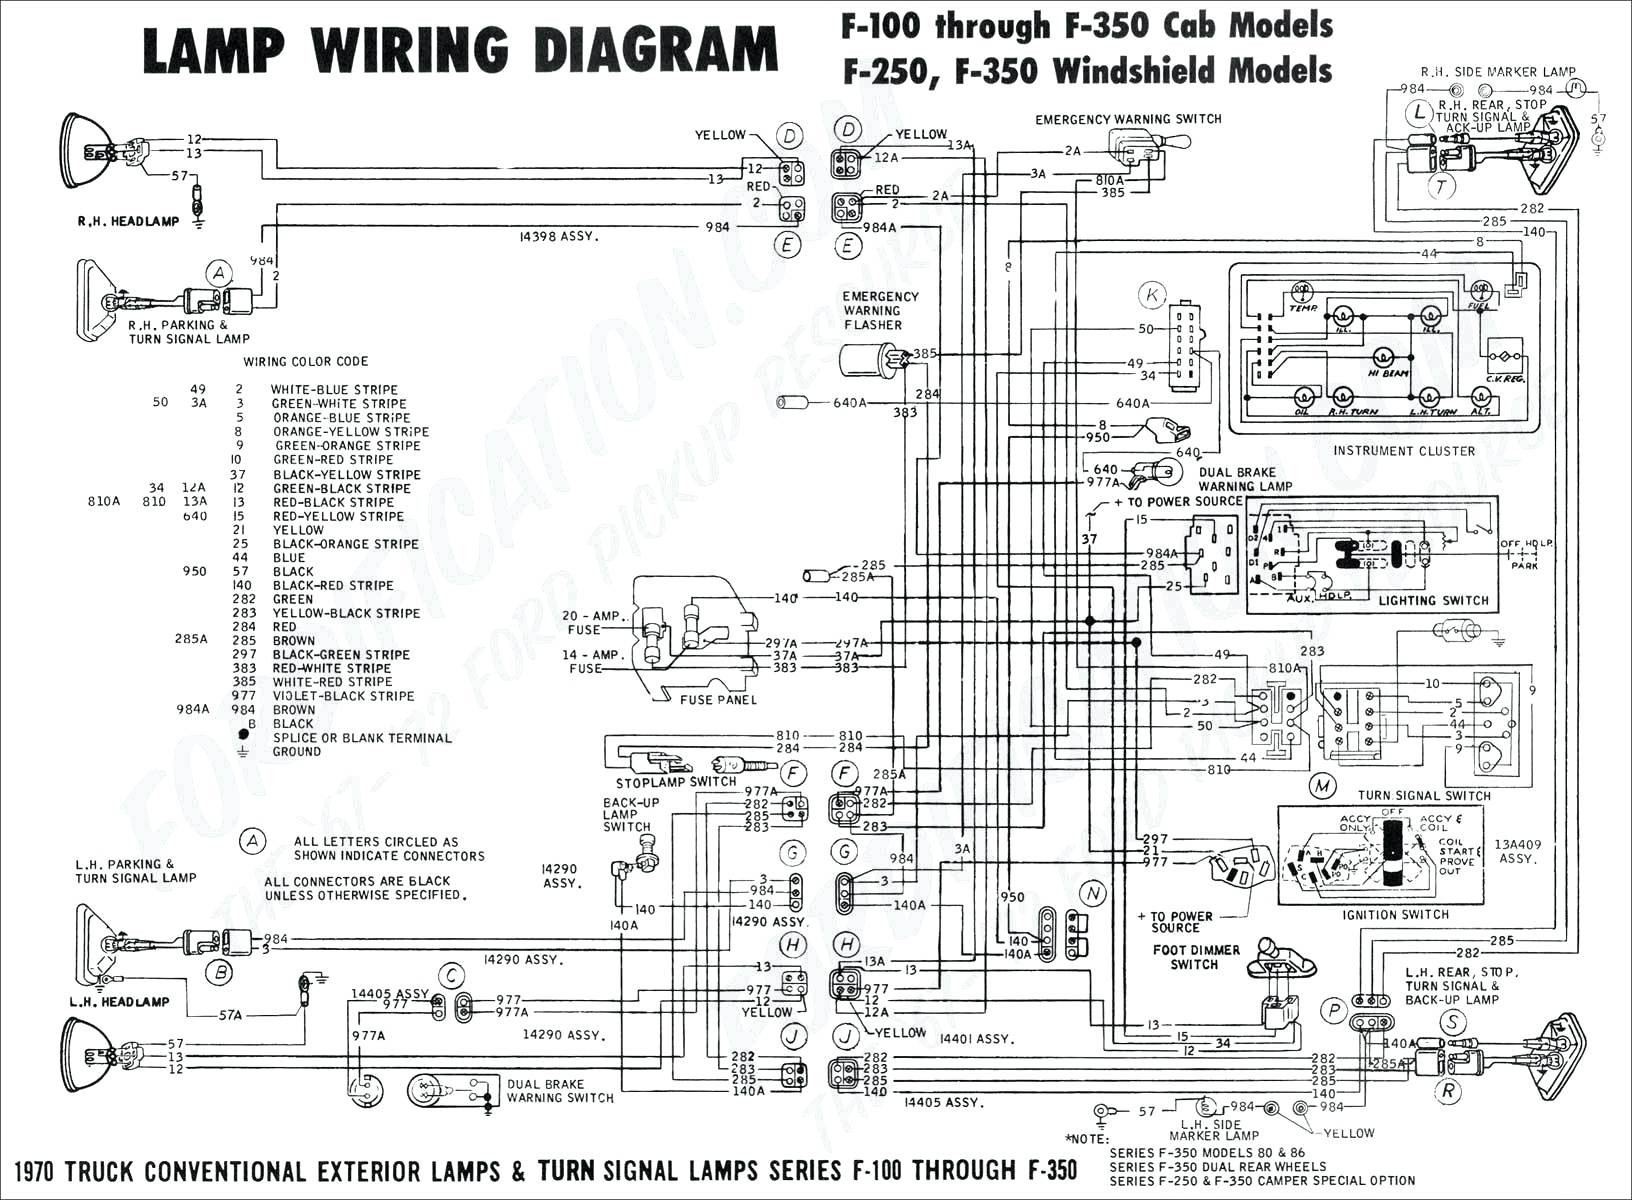 2000 ford F350 Tail Light Wiring Diagram 2005 ford F 350 Wiring Diagrams Trusted Wiring Diagrams • Of 2000 ford F350 Tail Light Wiring Diagram